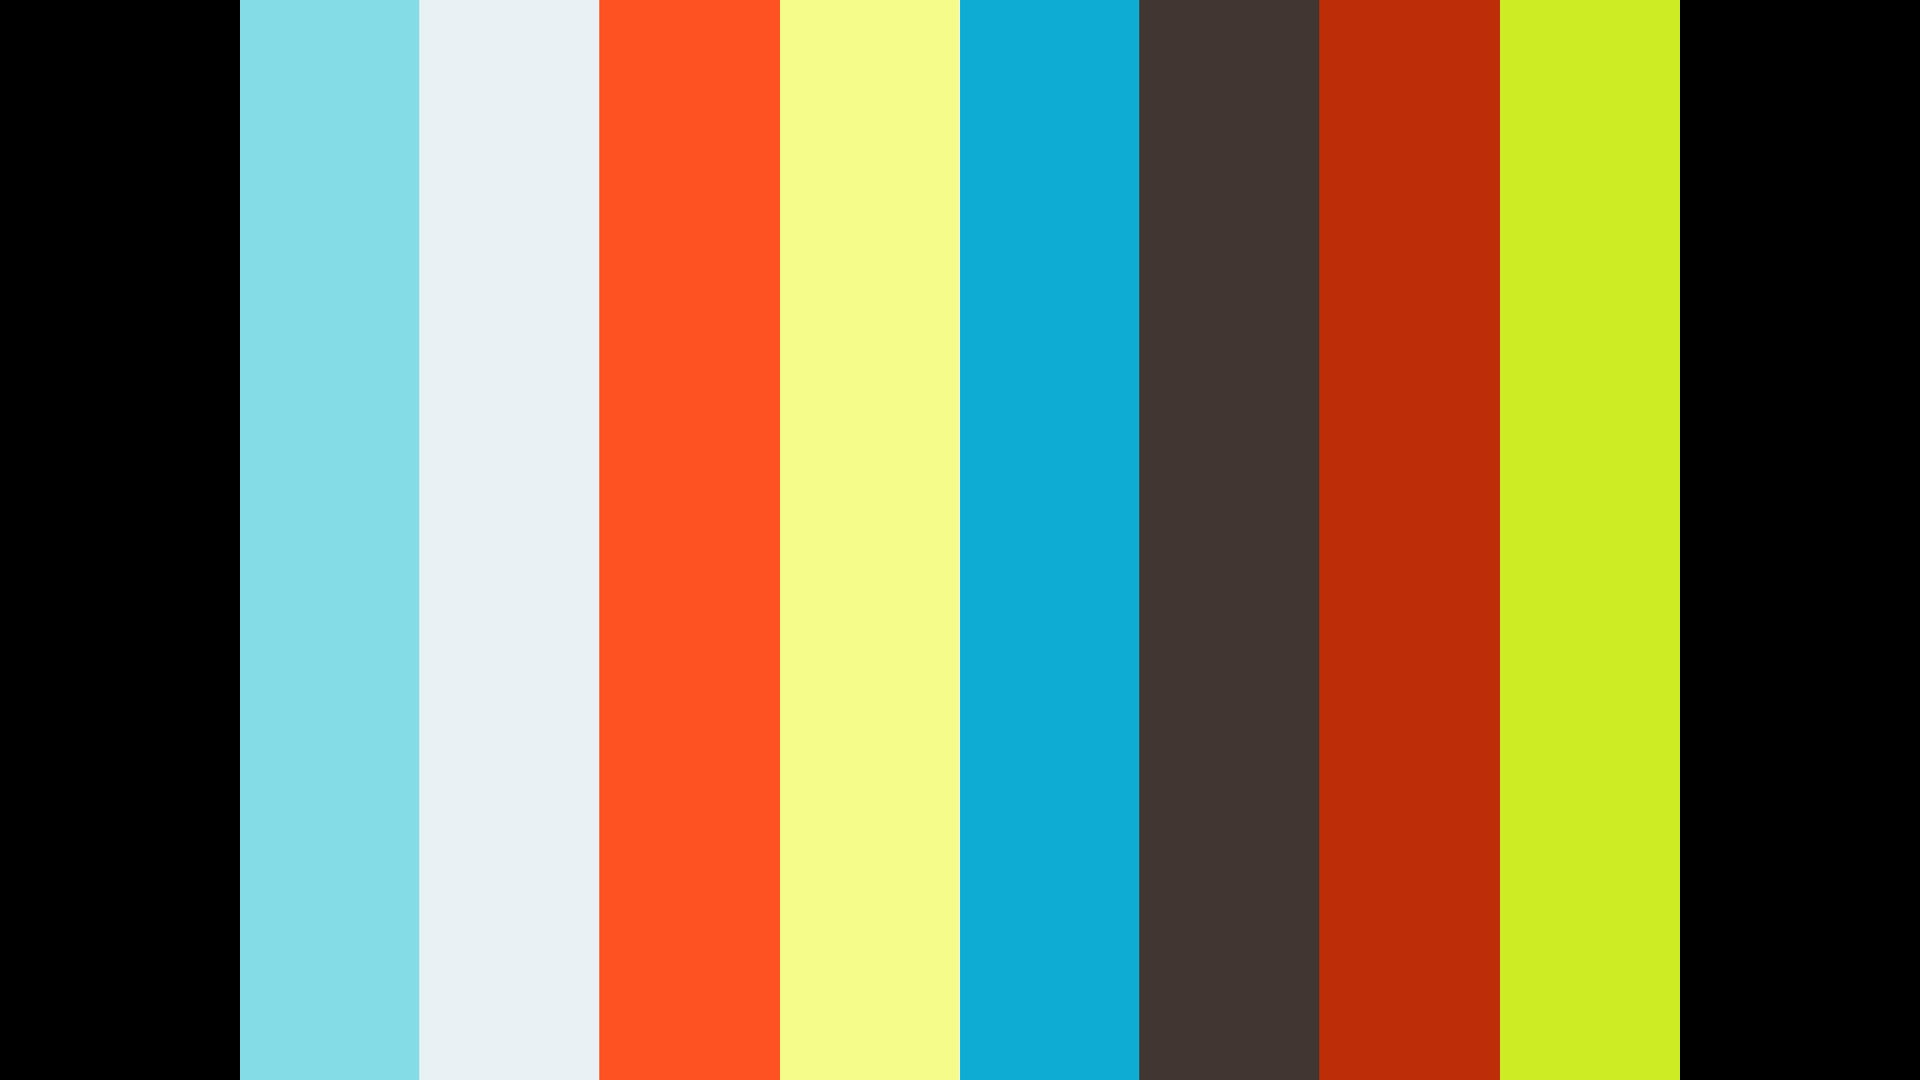 Economic Growth Update - October 3, 2016